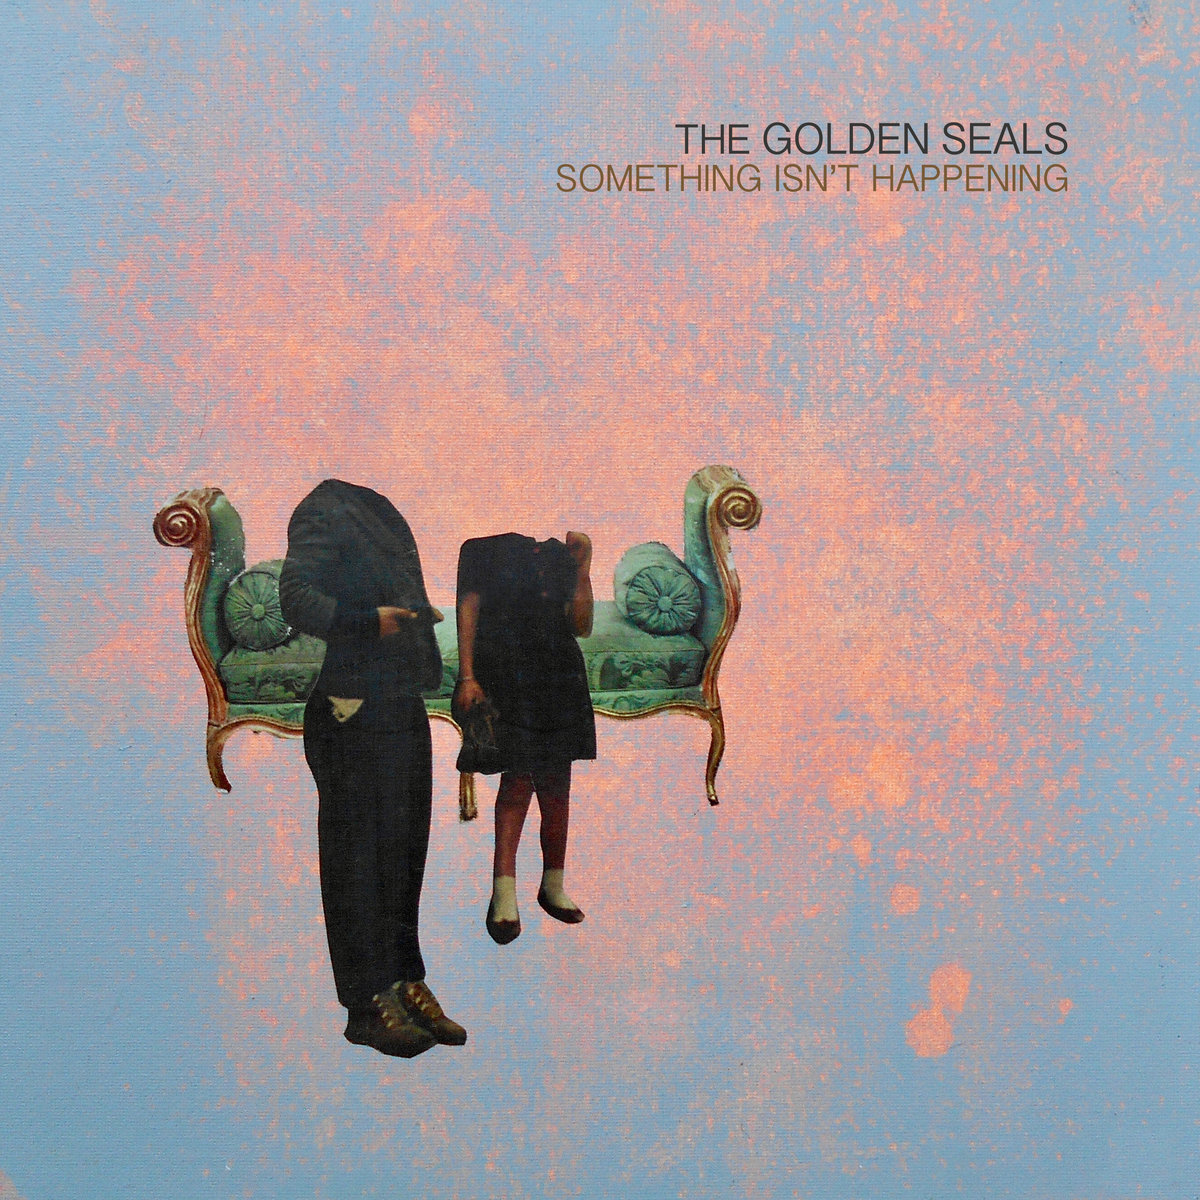 #nowplaying #thegoldenseals - Something Isn't Happening on @nofilterchuofm Playing #IrenesPub this Saturday with #arearesident!!